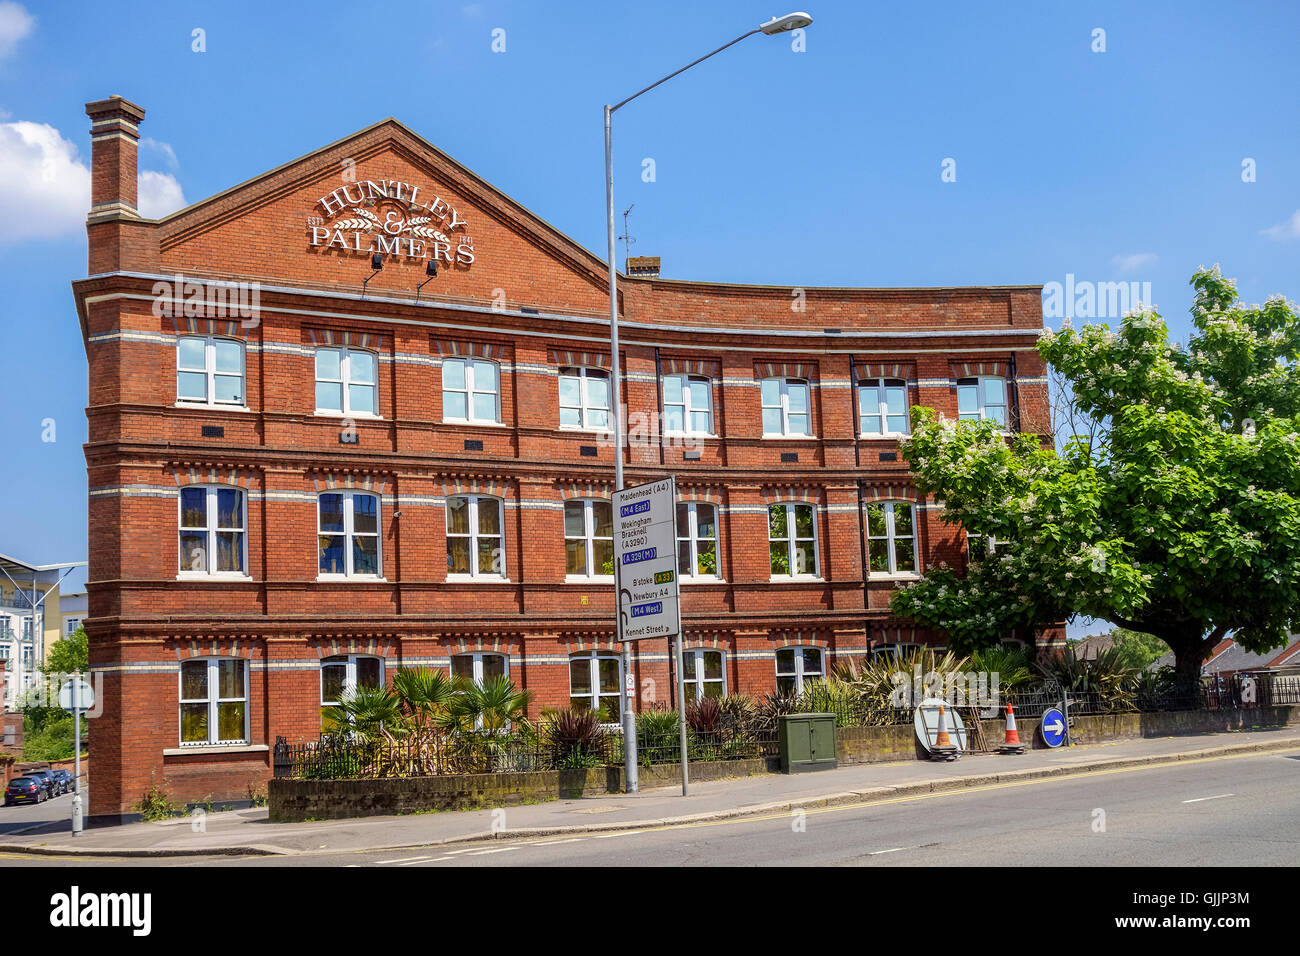 Huntley and Palmer Building Reading Berkshire - Stock Image